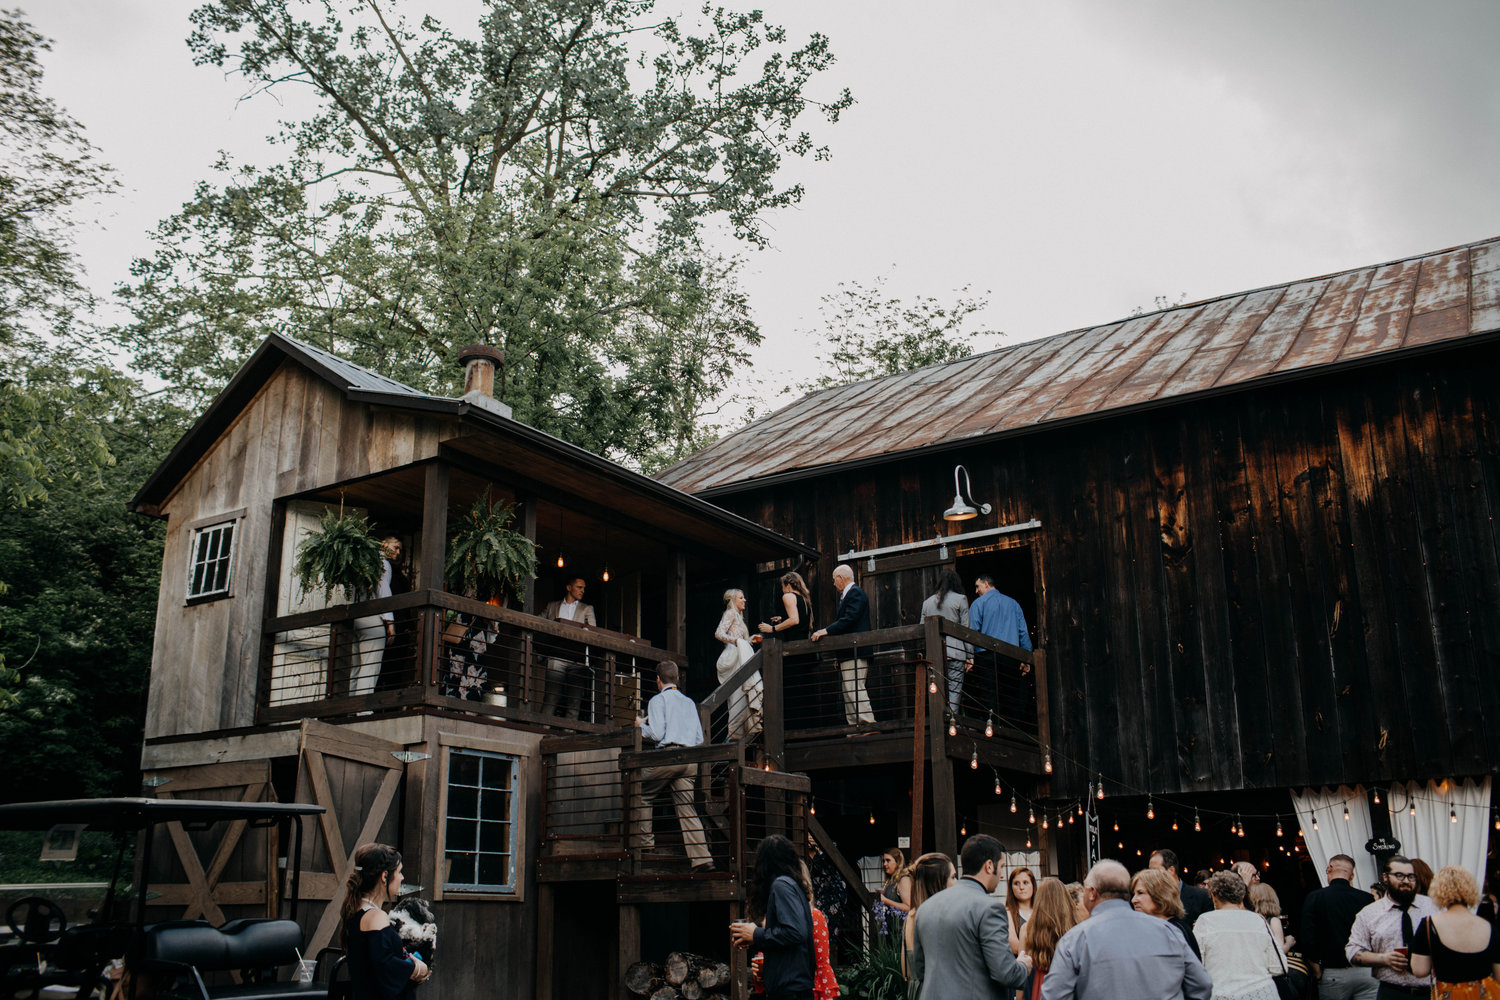 Columbus+ohio+wedding+photographer+canyon+run+ranch+wedding+grace+e+jones+photography+wedding+photographer266.jpg